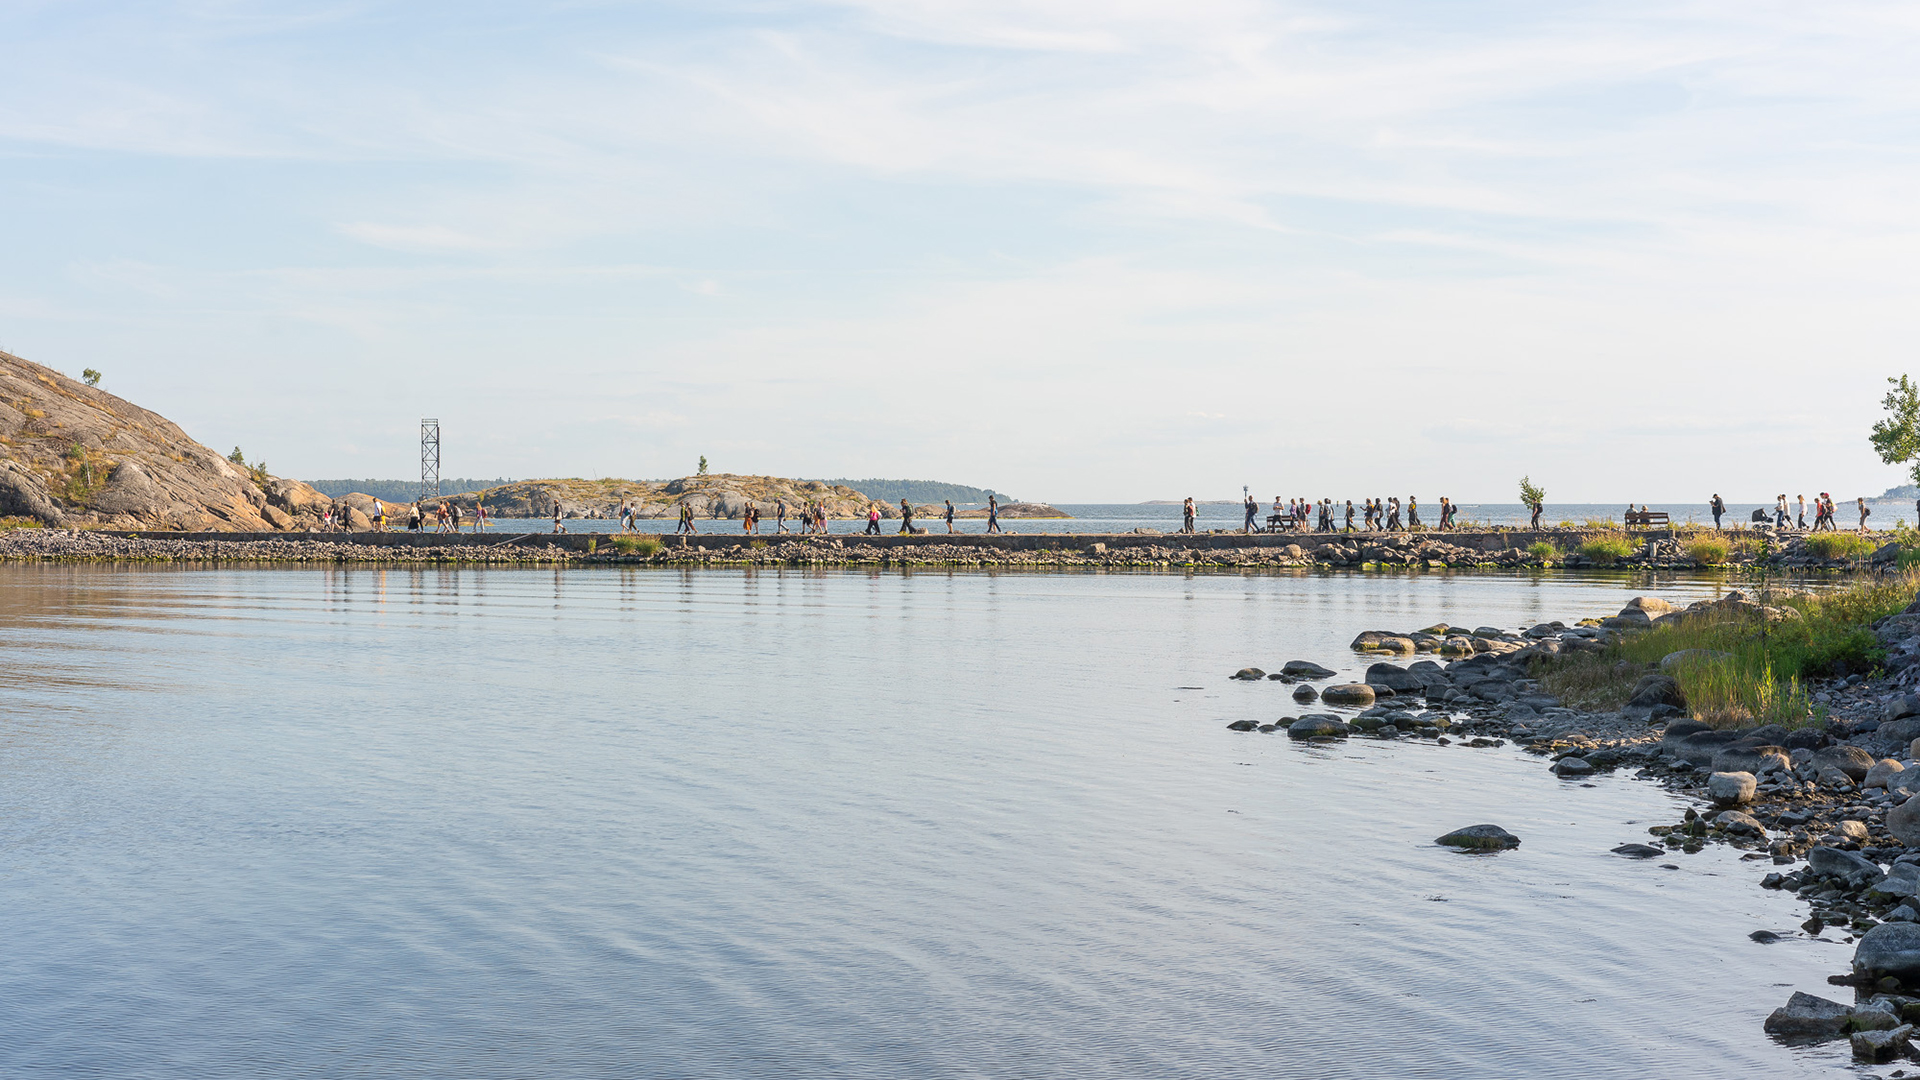 From a distance, people crossing a neck of land that connects Vallisaari and Kuninkaansaari islands.